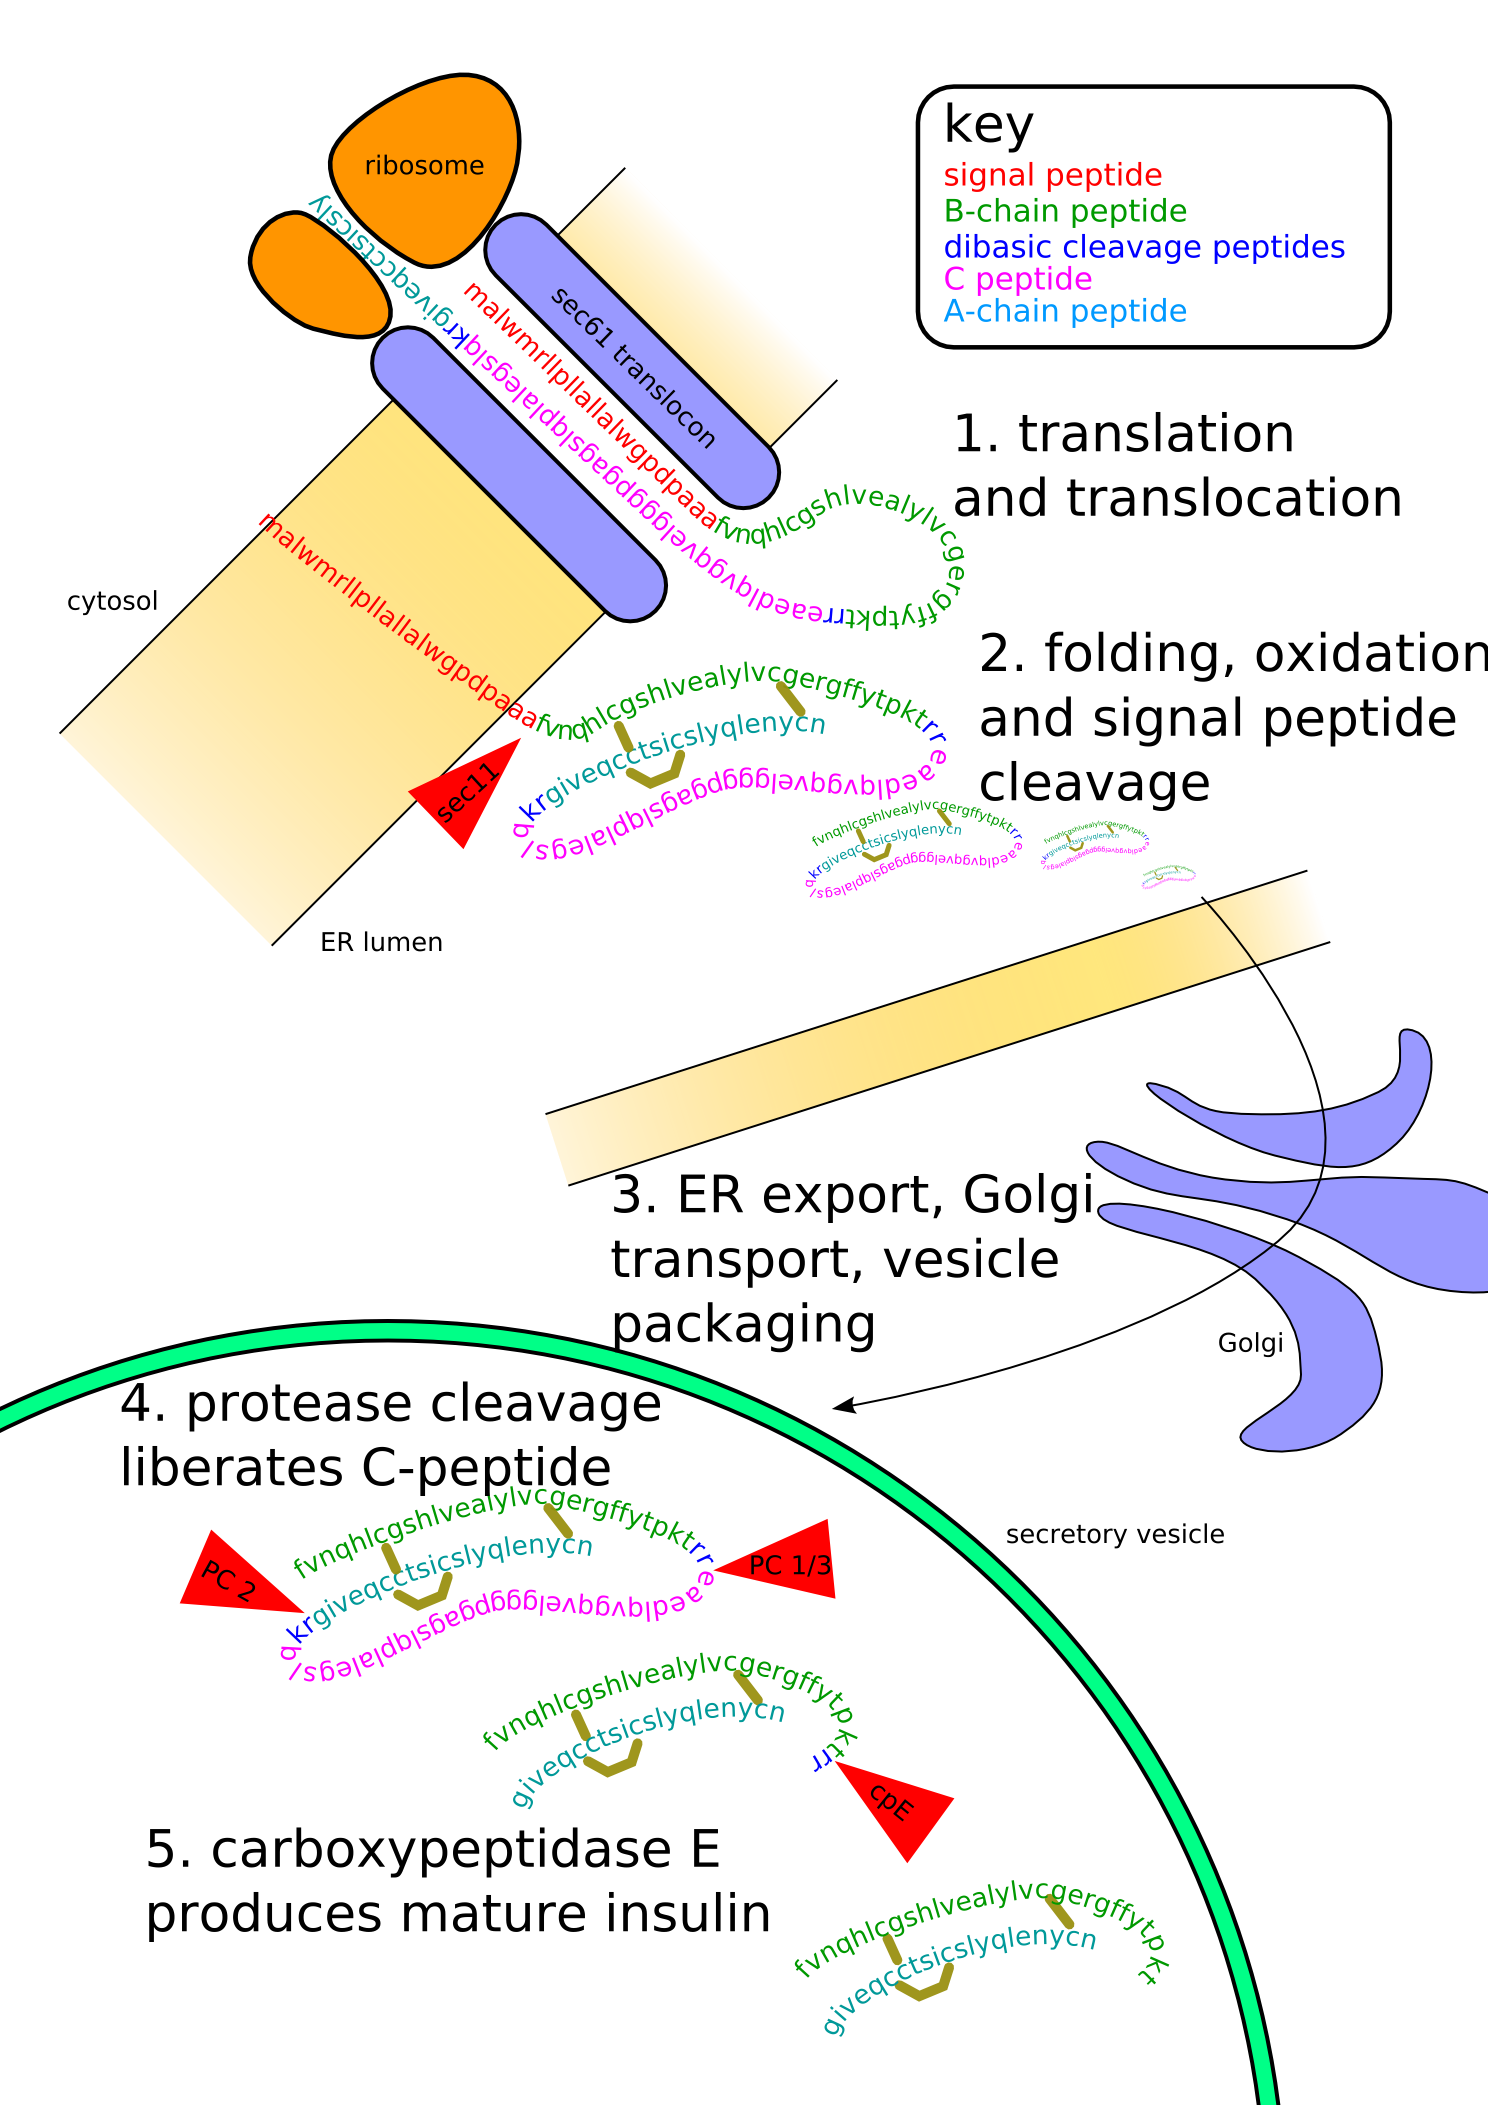 The bottom of this diagram shows the modification of primary structure of insulin, as described.